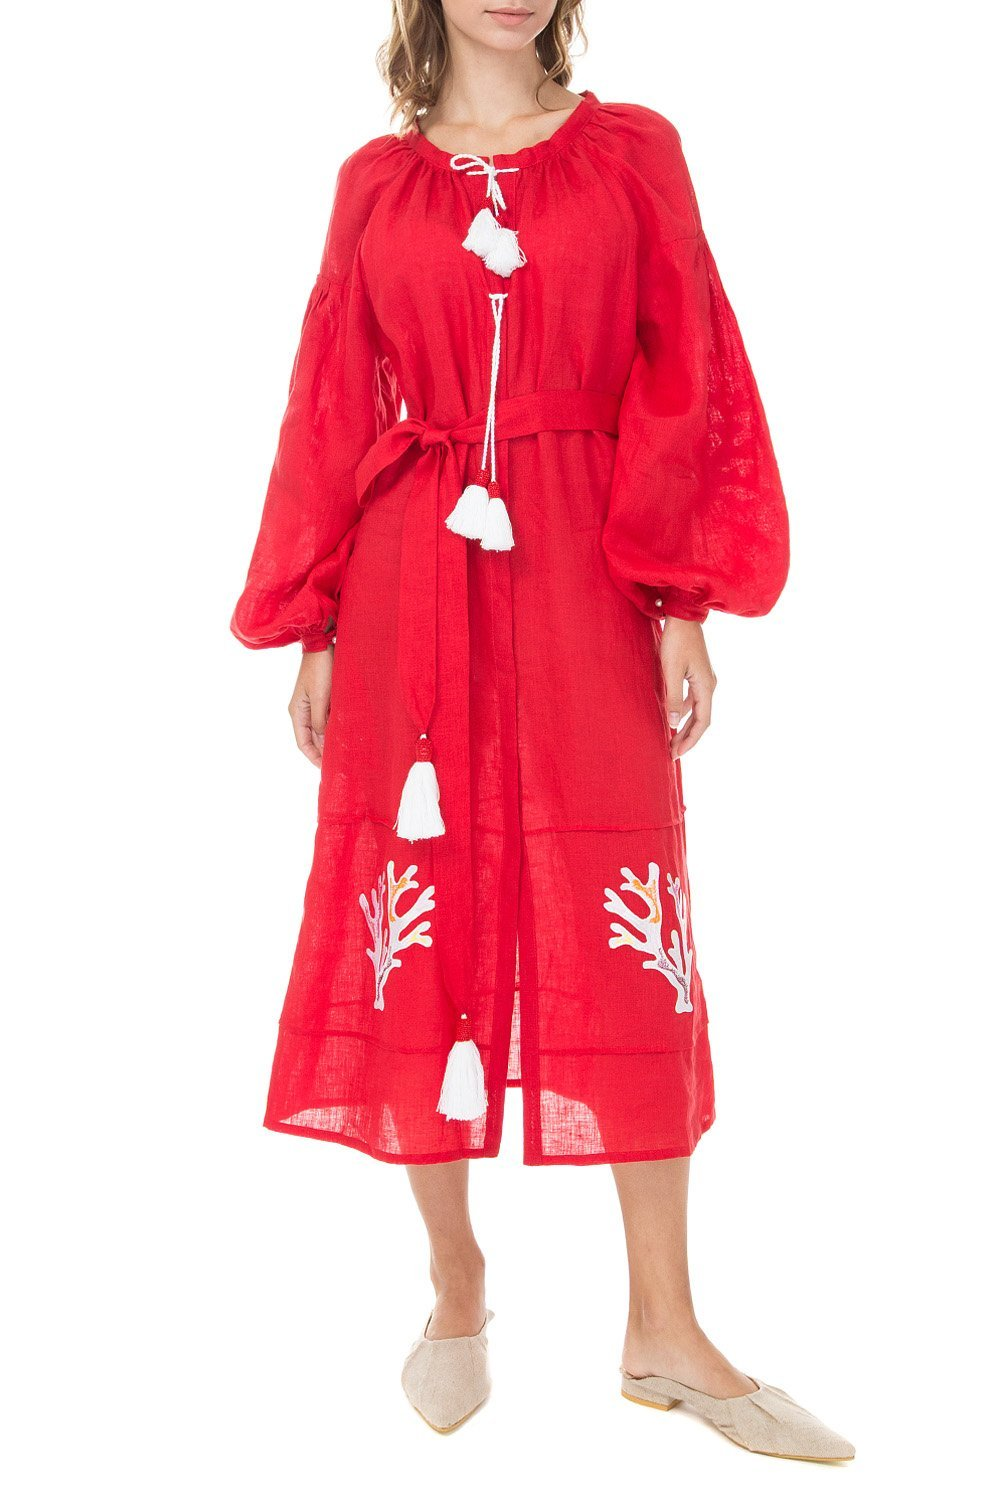 Saint-Tropez Boho Red Dress